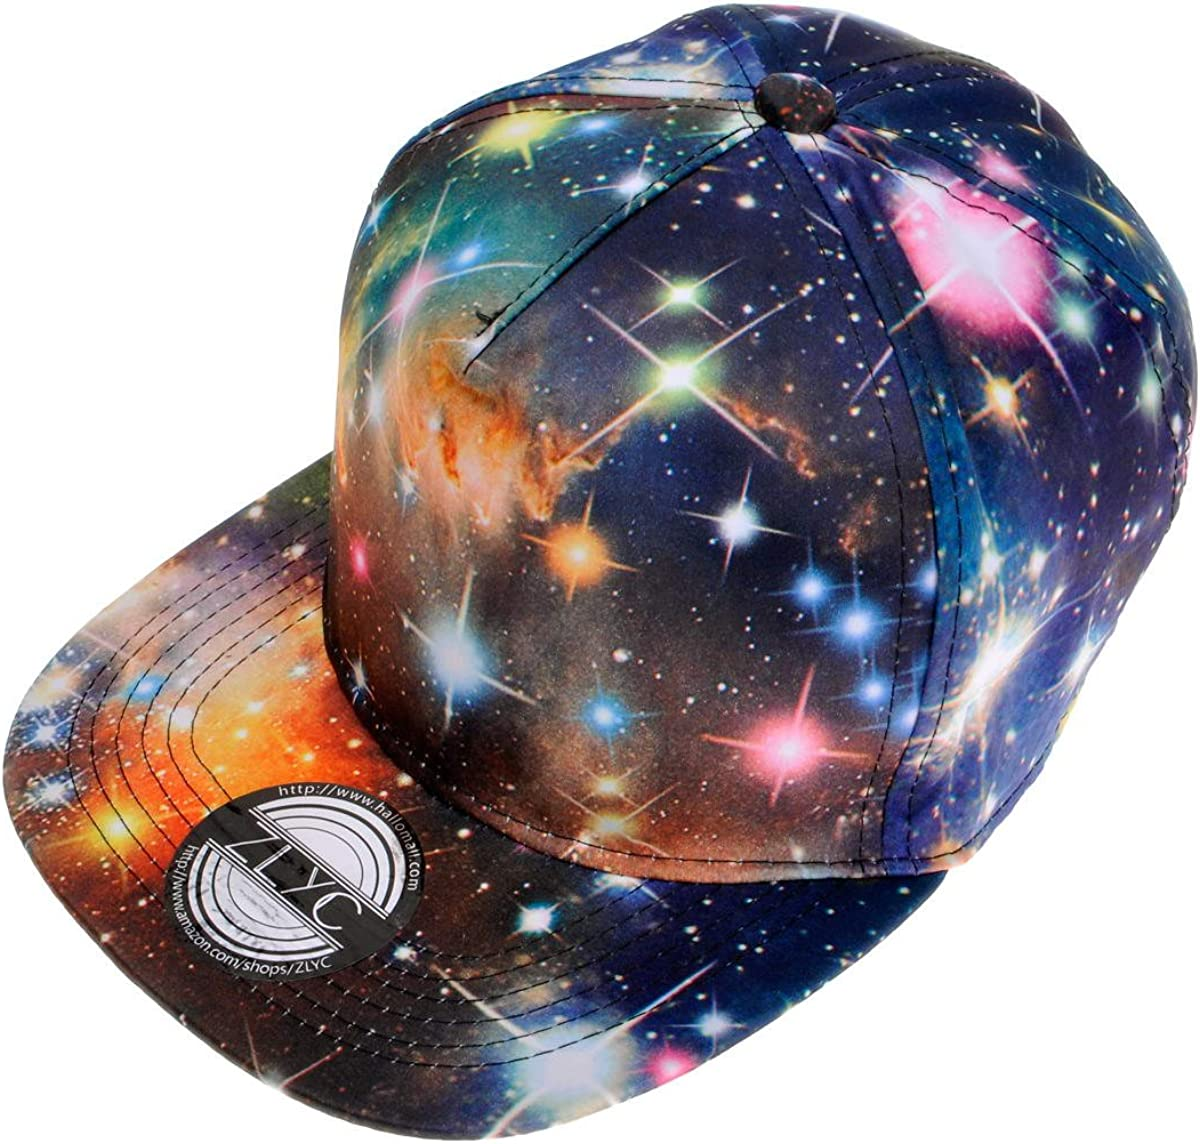 ZLYC Unisex Galaxy A SEAL limited product surprise price is realized Baseball Cap Adjustable Bill Flat Snapback Ha